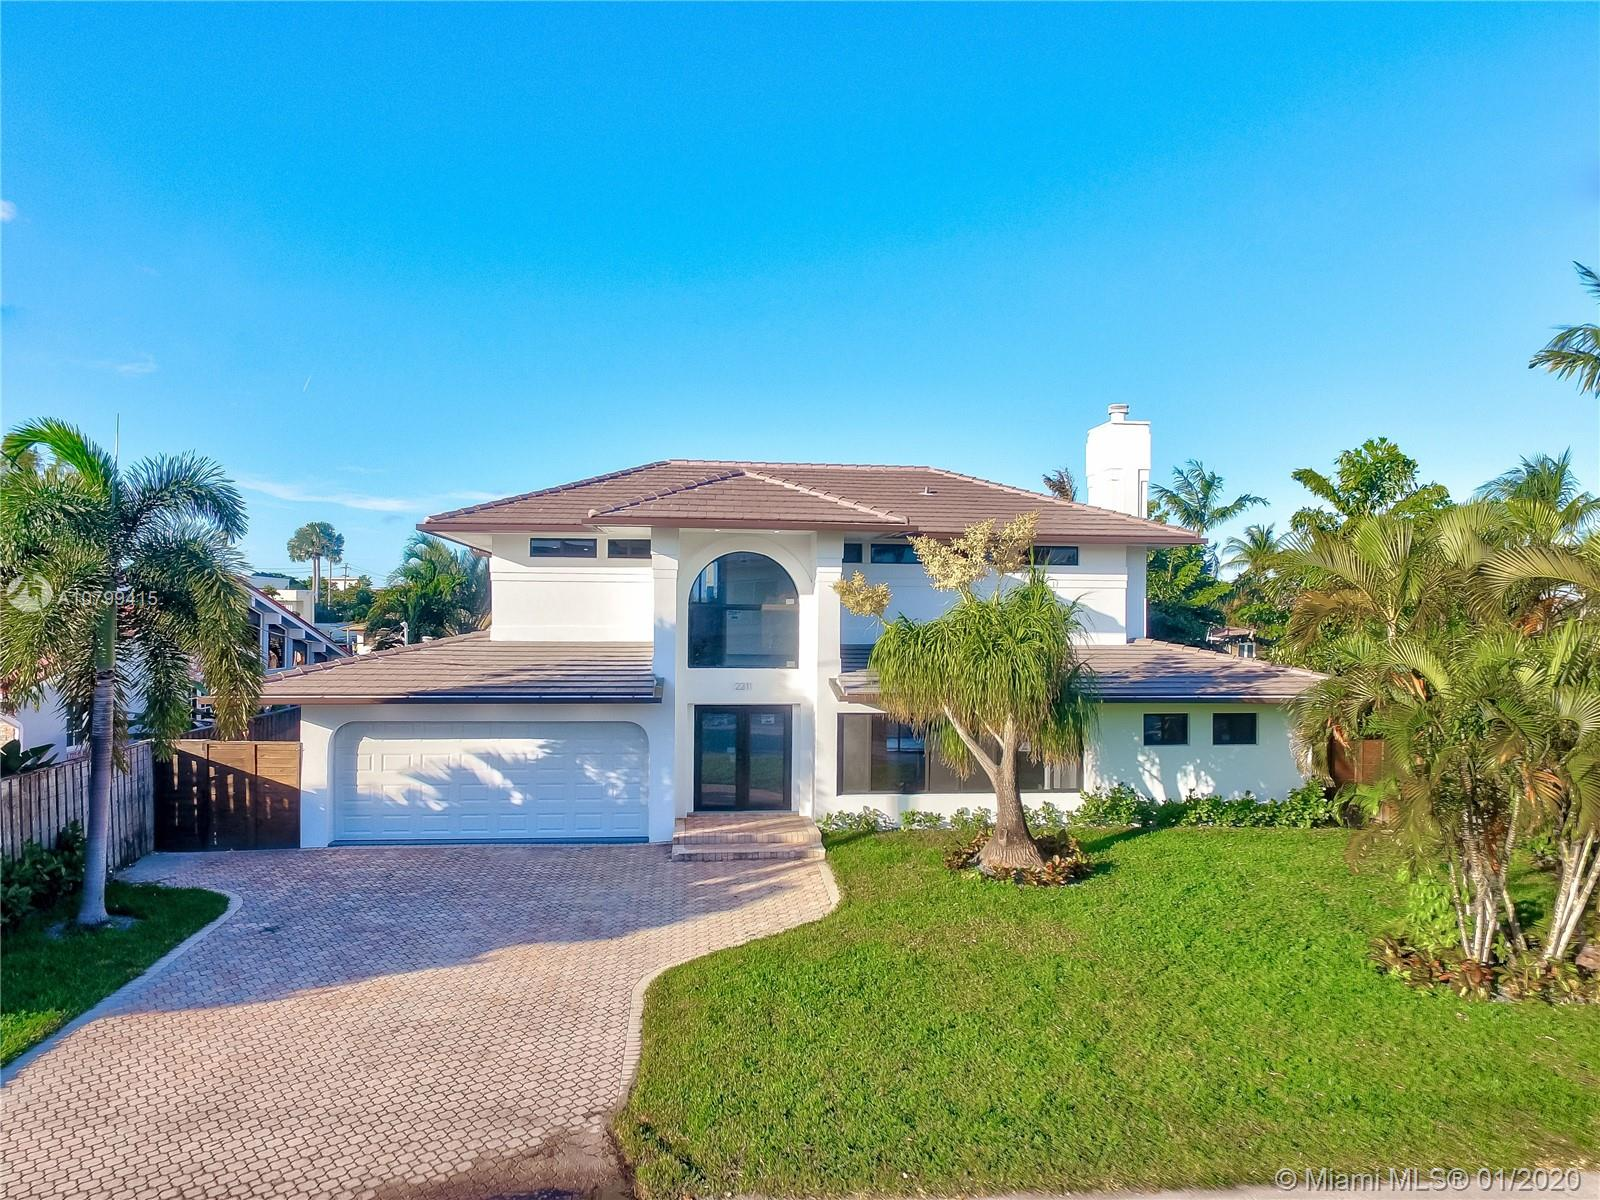 """COMPLETE REMODEL. THIS STUNNING 4 BEDROOM 3 BATH WATERFRONT HOUSE FEATURES: NEW ROOF, NEW HIGH IMPACT WINDOWS AND DOORS, NEW INTEGRATED KITCHEN WITH GRANITE COUNTER TOPS, NEW BATHROOMS, NEW AC, ALL NEW APPLIANCES, NEW TILE FLOORS. OCEAN ACCESS WATERFRONT (1 FIX BRIDGE 10"""")COME SEE THIS BREATHTAKING, MODERN AND EXCLUSIVE HOUSE IN THE GATED BAL HARBOR NEIGHBORHOOD.MOVE IN READY."""